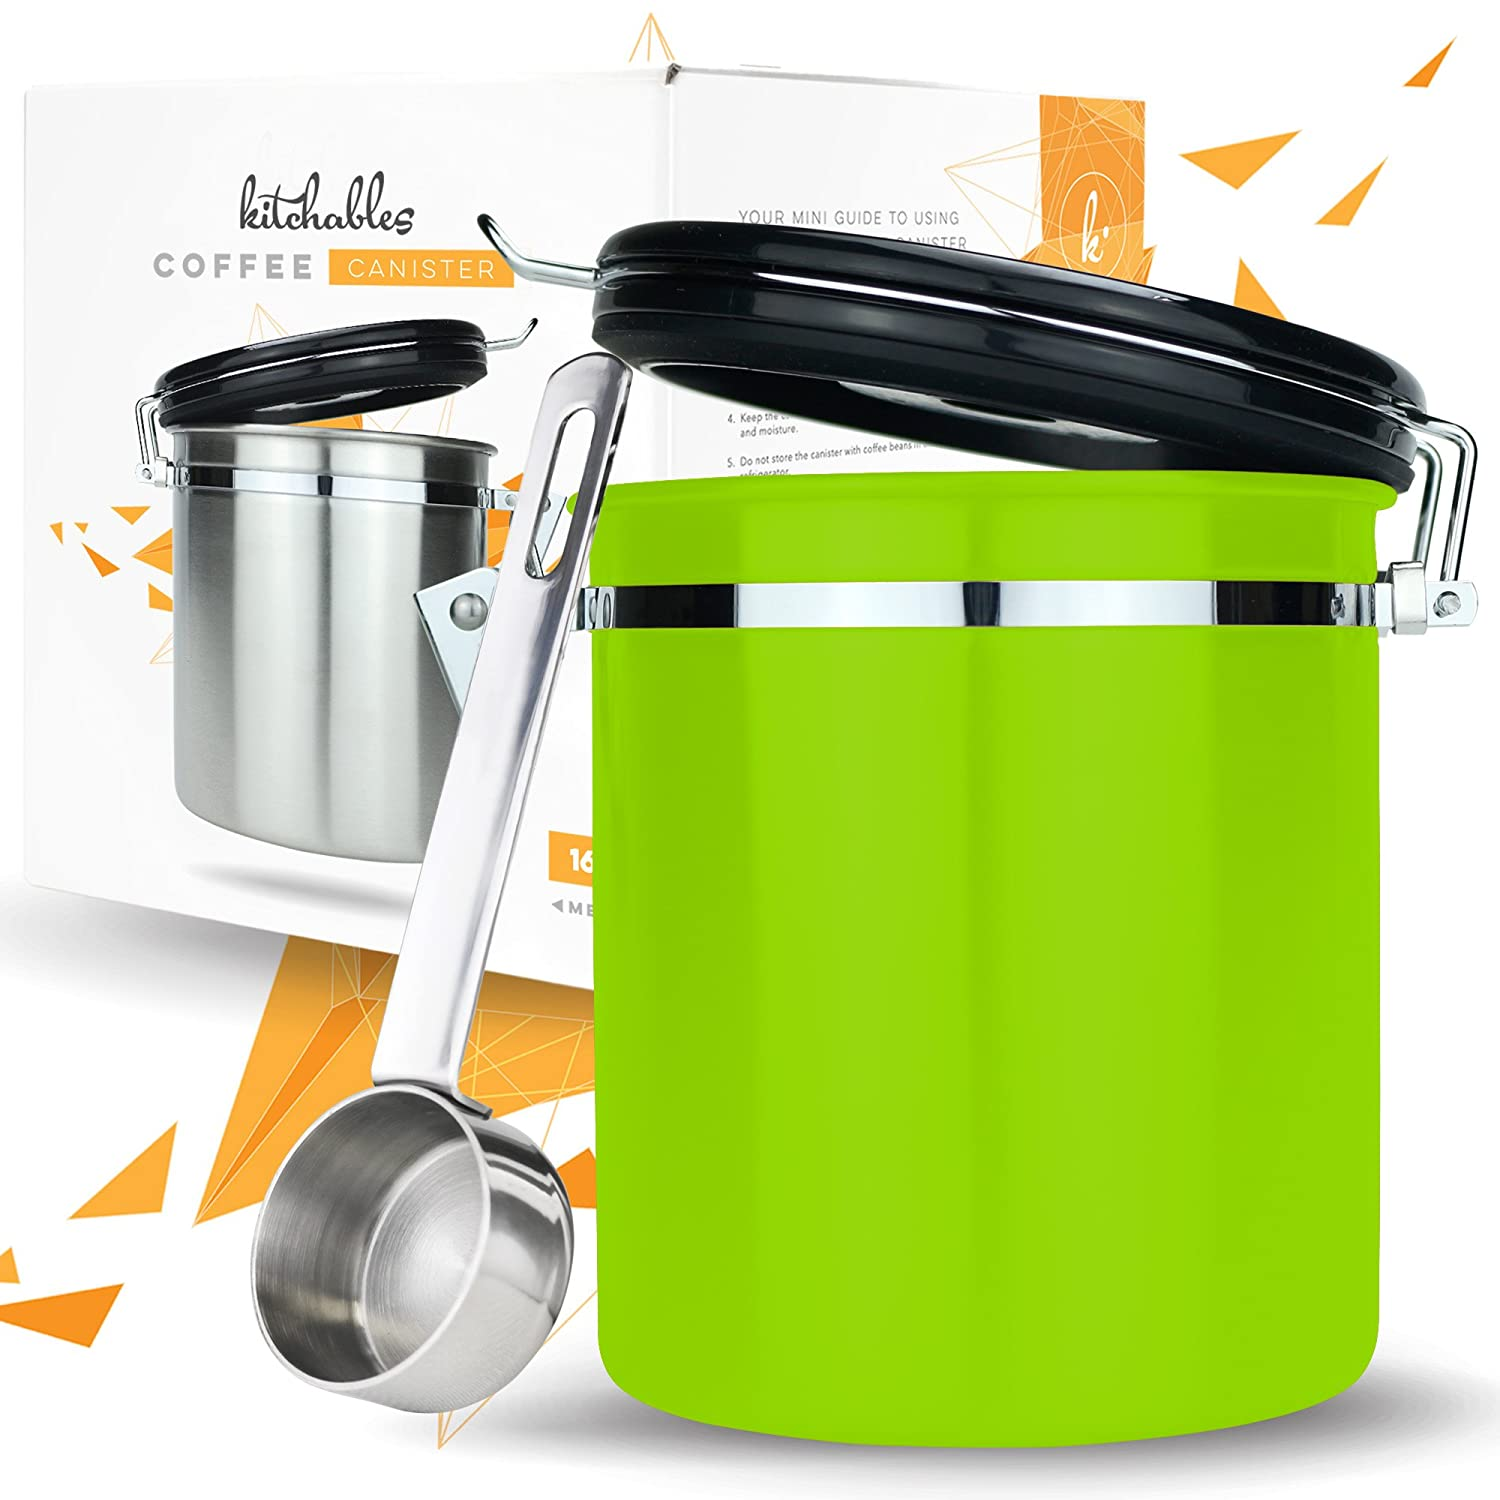 Coffee Storage Container with Scoop - Airfresh Valve Stainless Steel Metal Canister for Fresher Coffee Ground or Beans (Arabica Green) Kitchables COMIN18JU064313